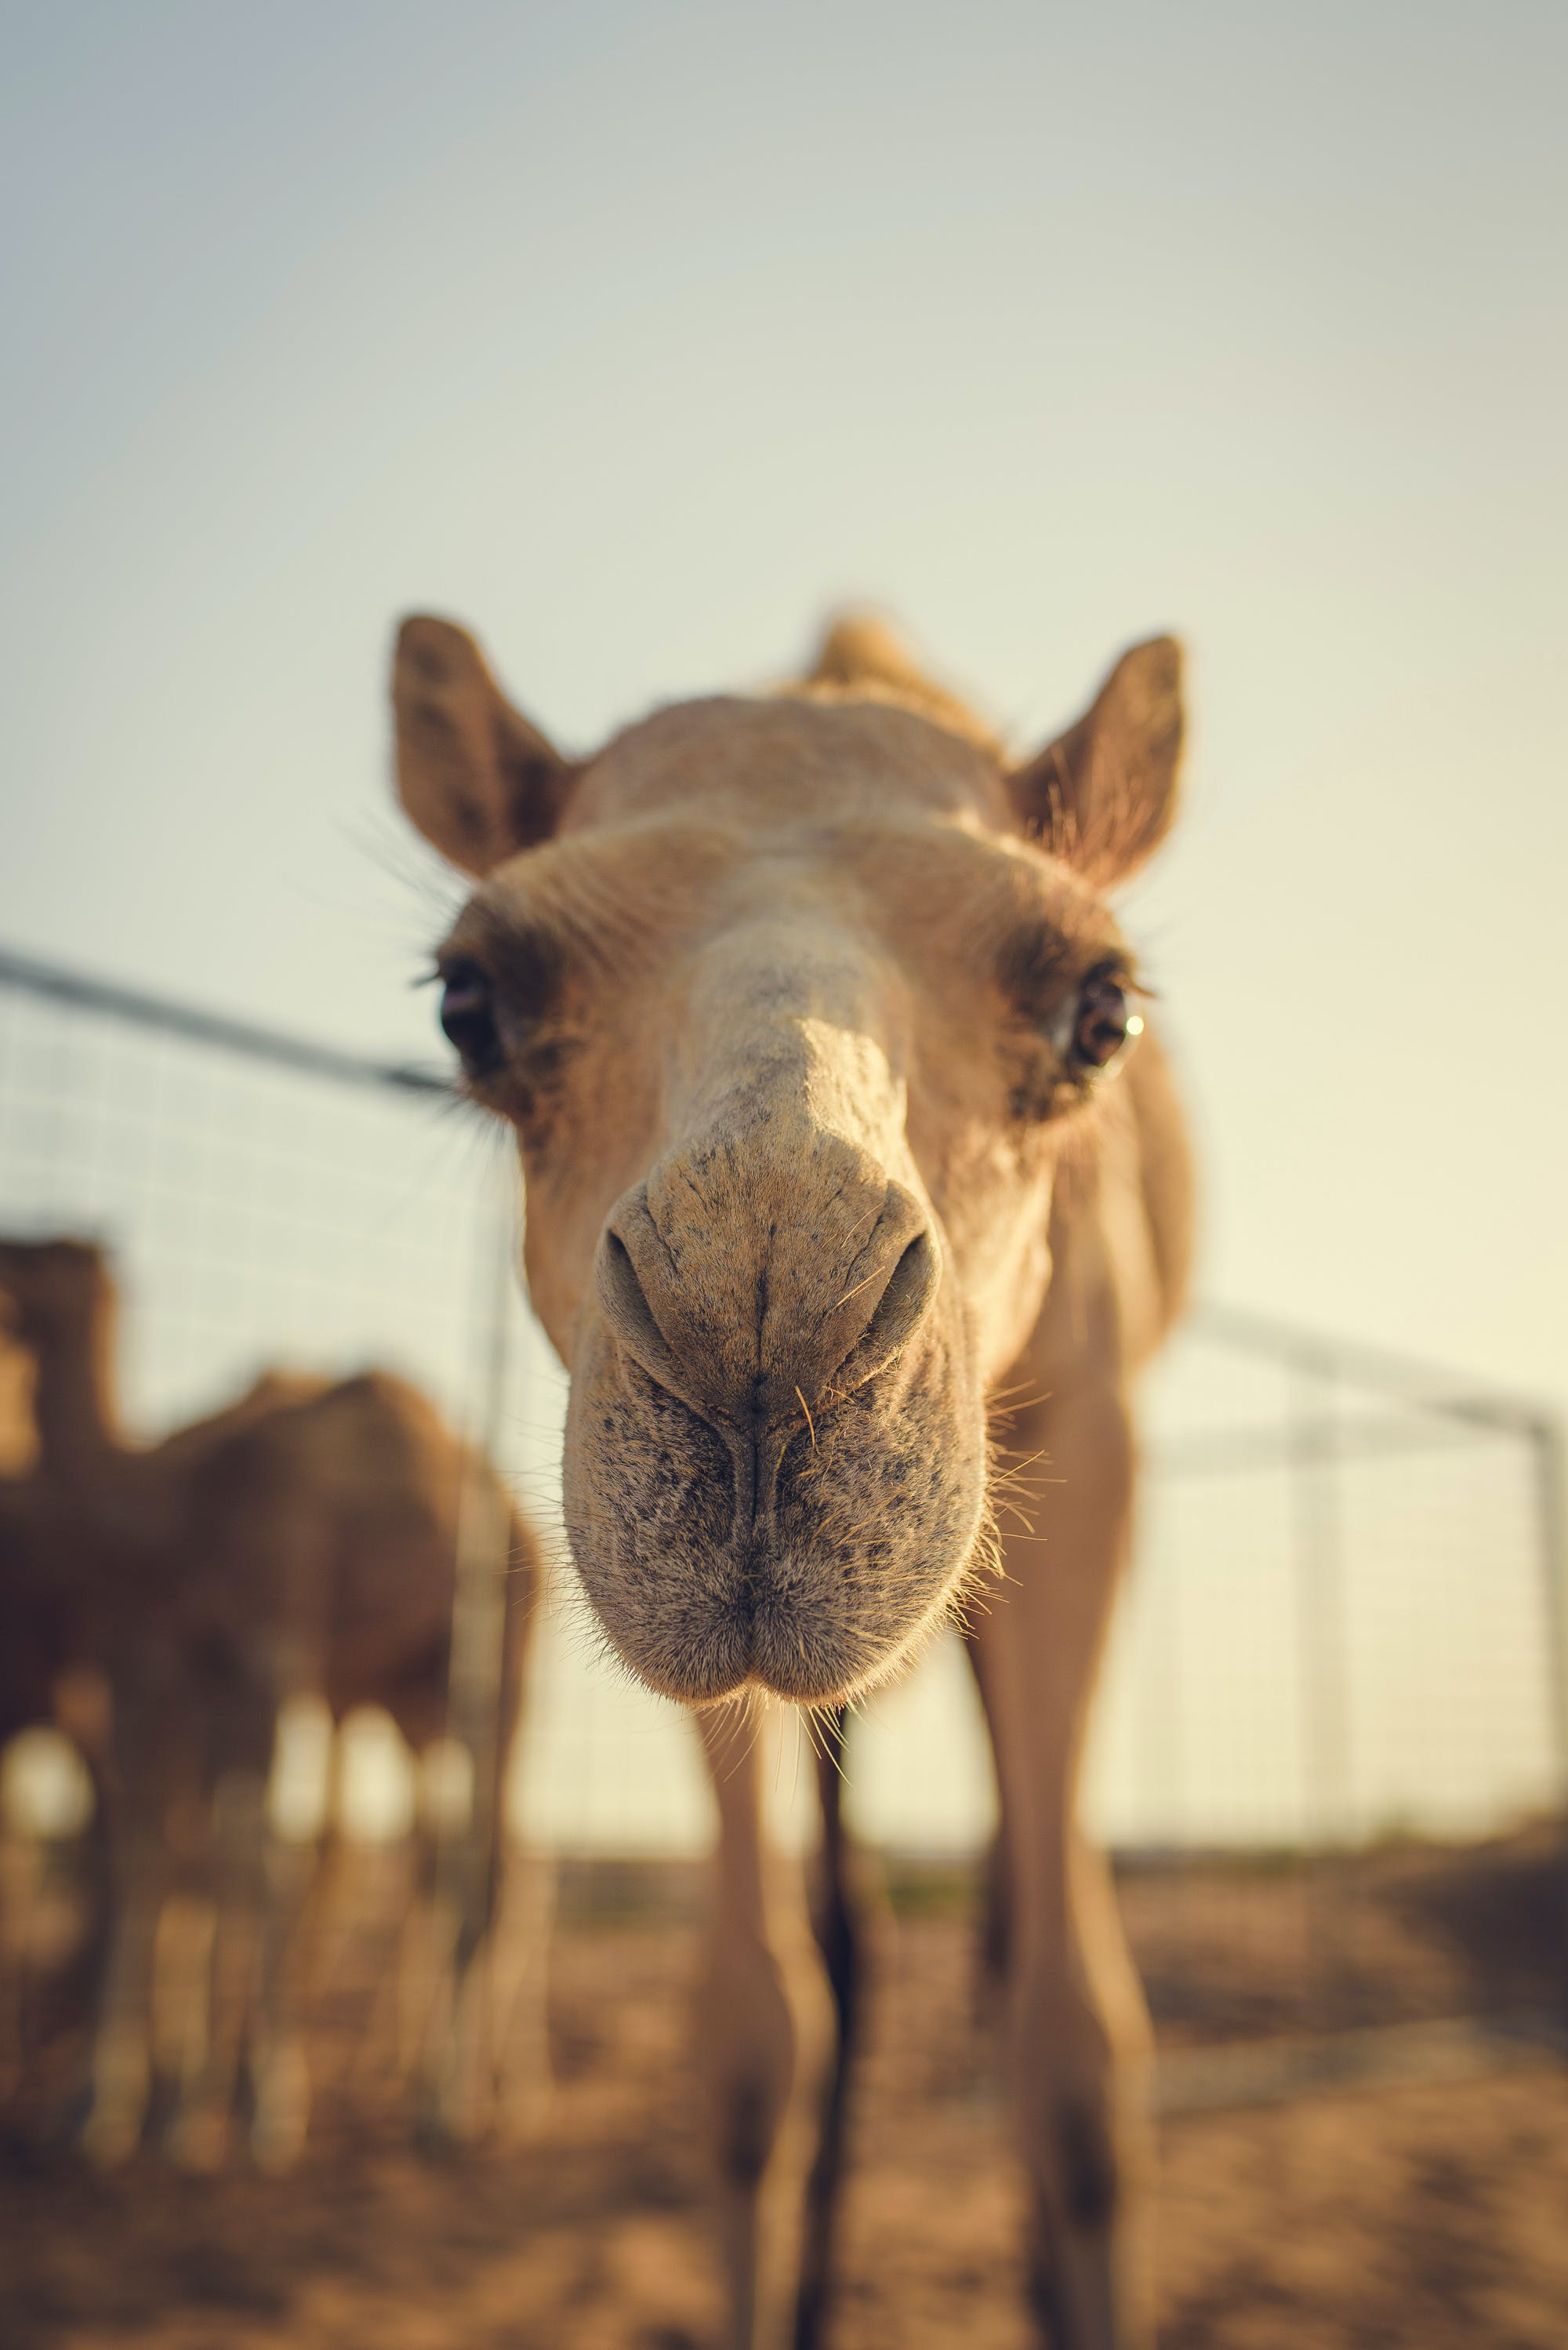 Brown Camel by Fence during Golden Hour